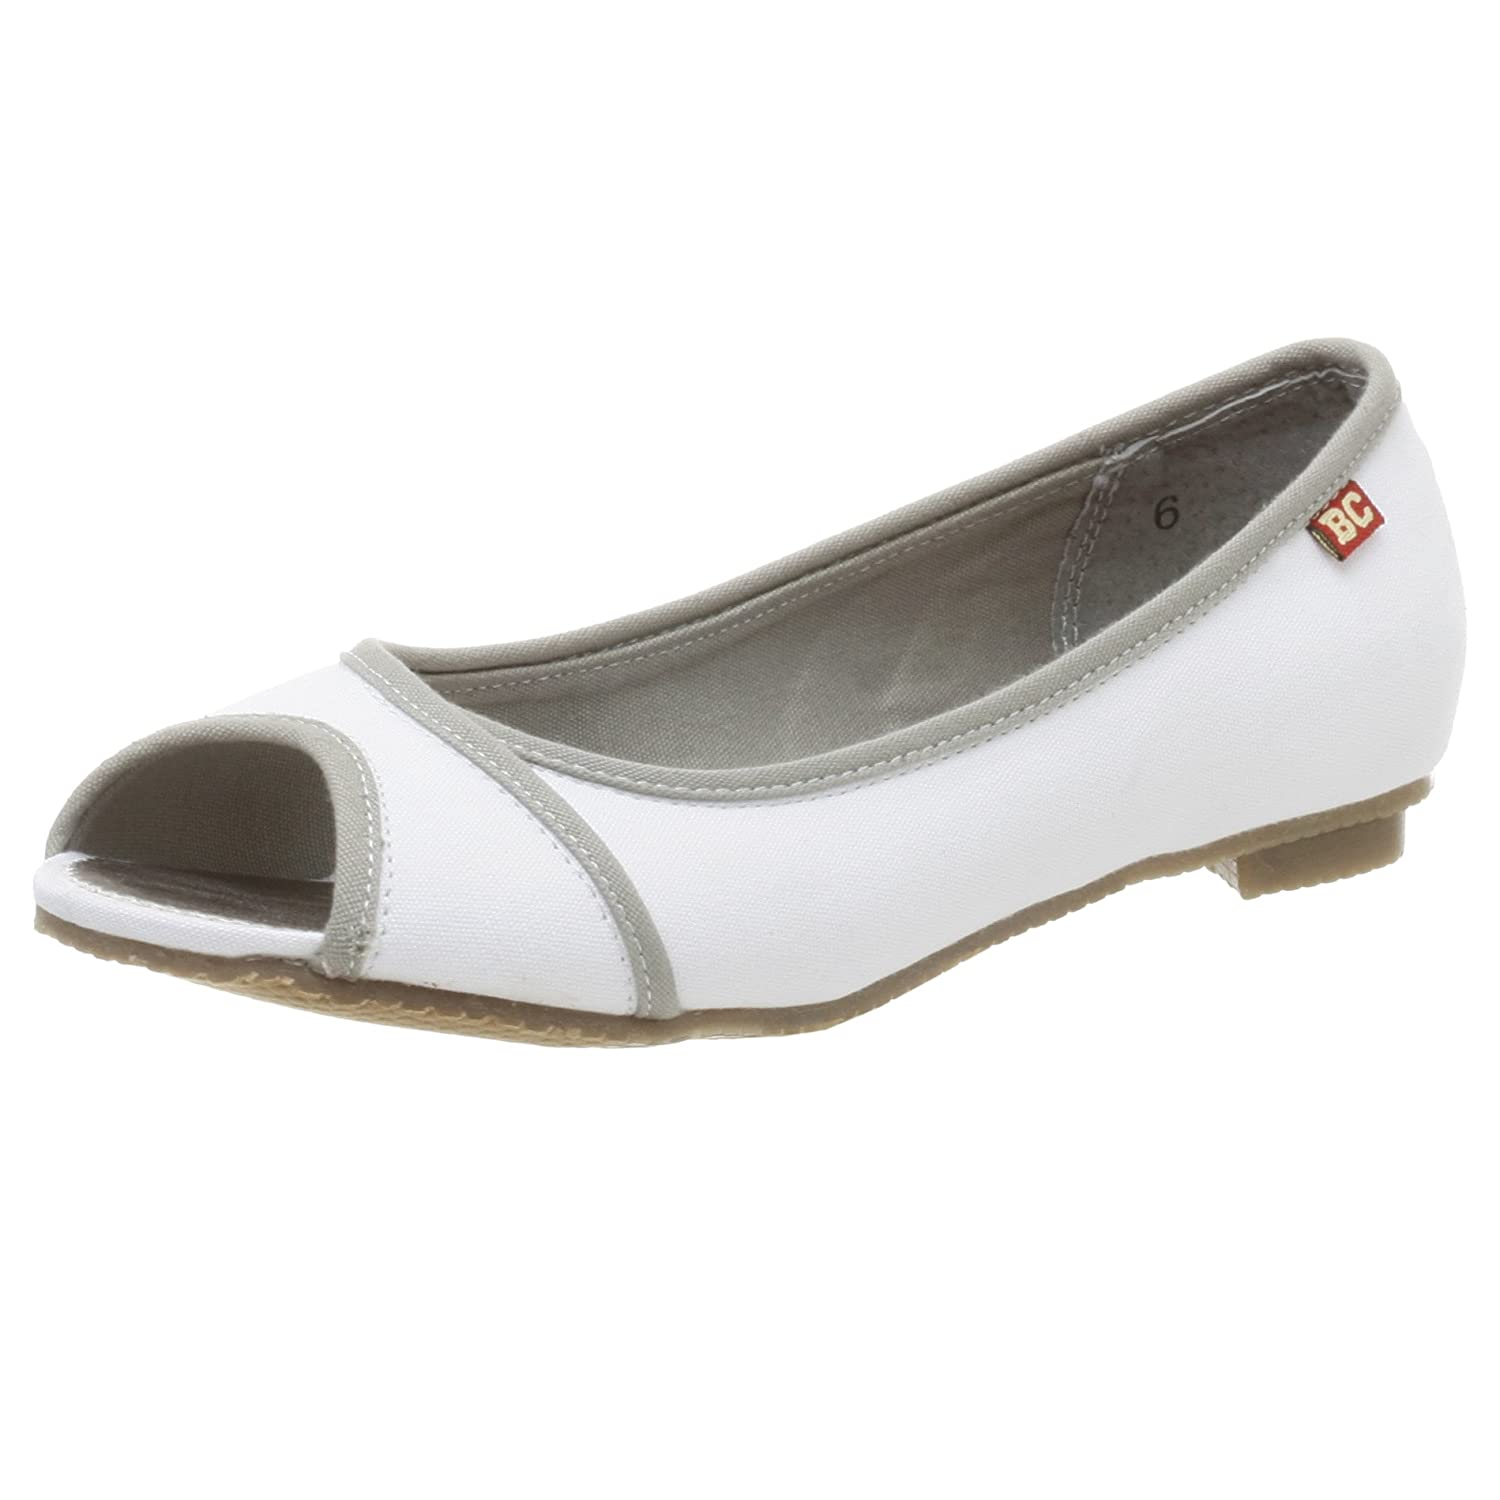 BC Footwear Women's Skinny Dippin Open Toe Flat - Free Overnight Shipping & Return Shipping: Endless.com